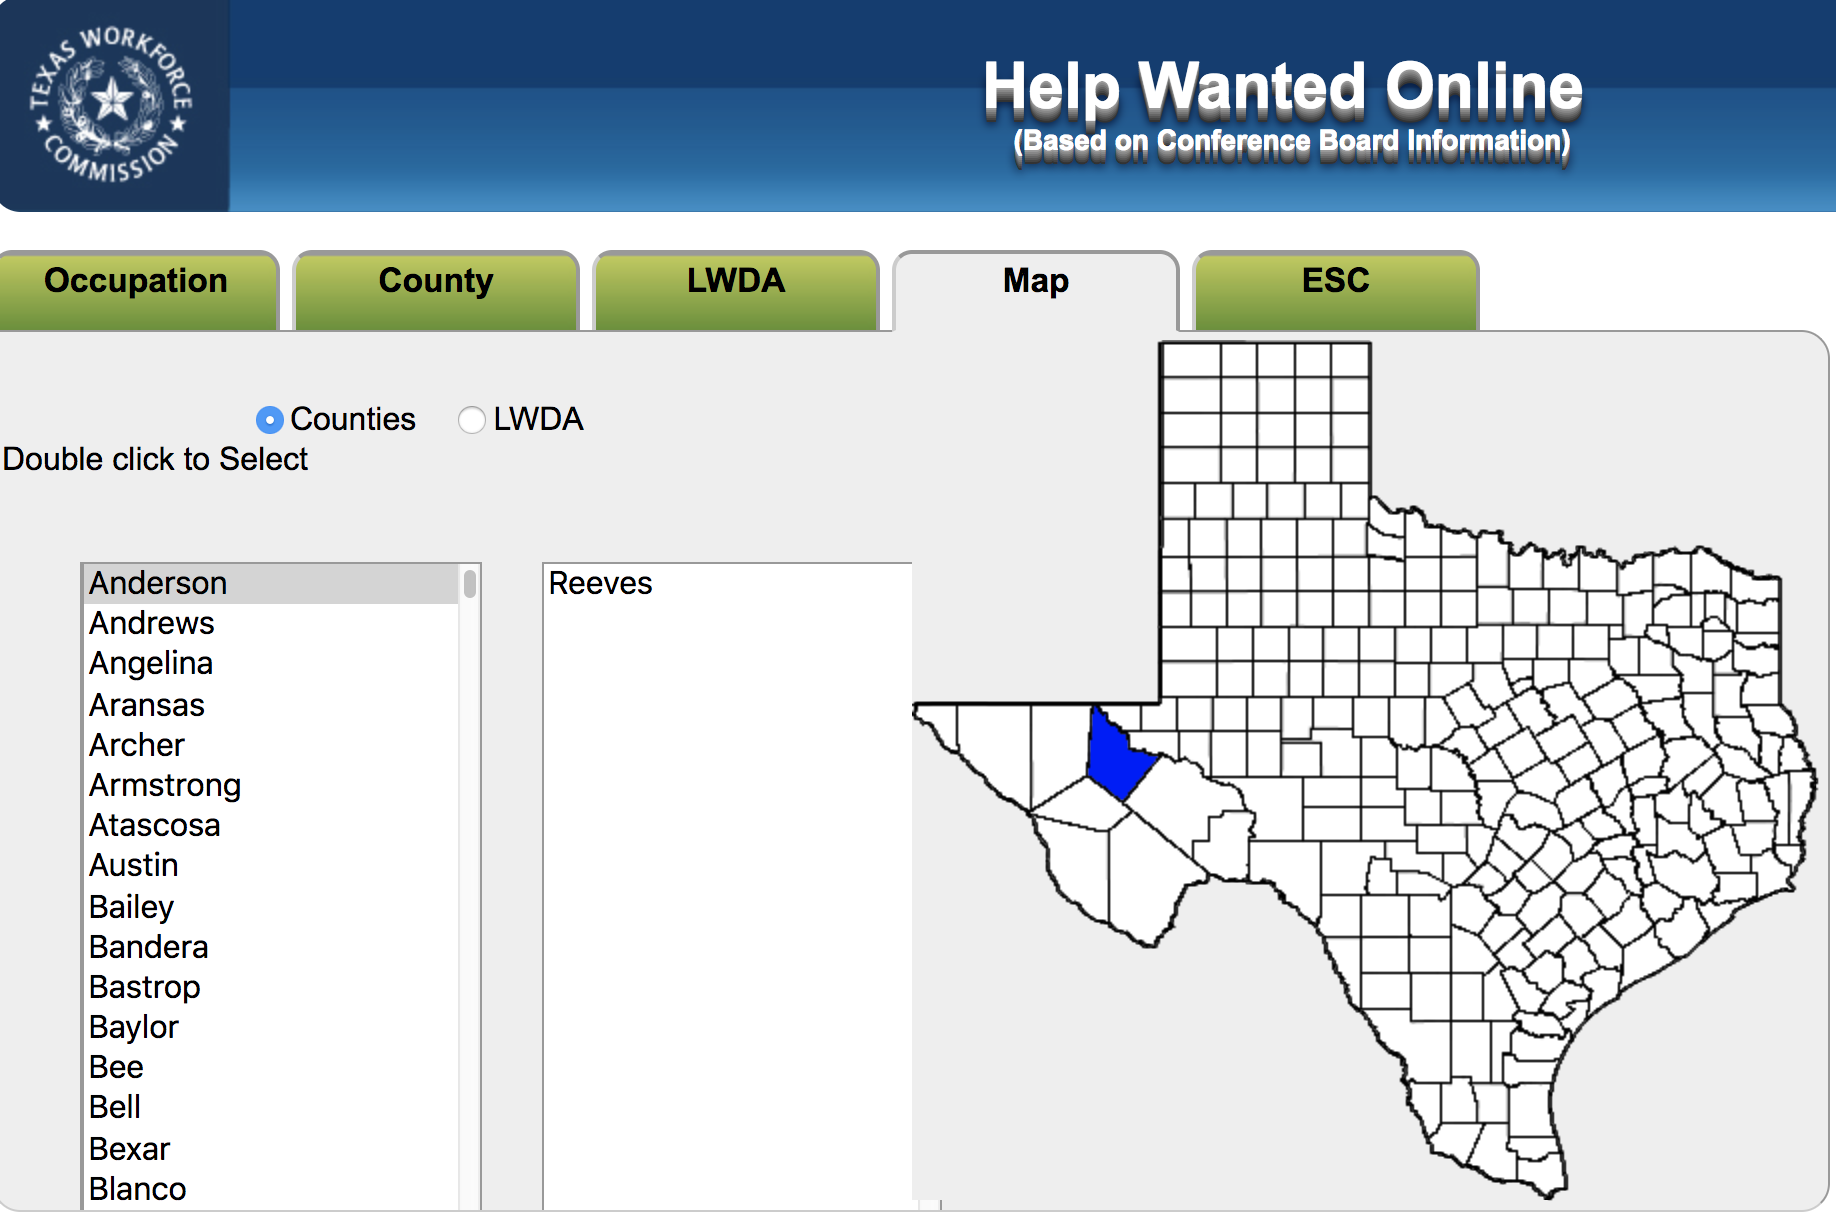 Screenshot: Map of Texas with region highlighted, titled Help Wanted Online